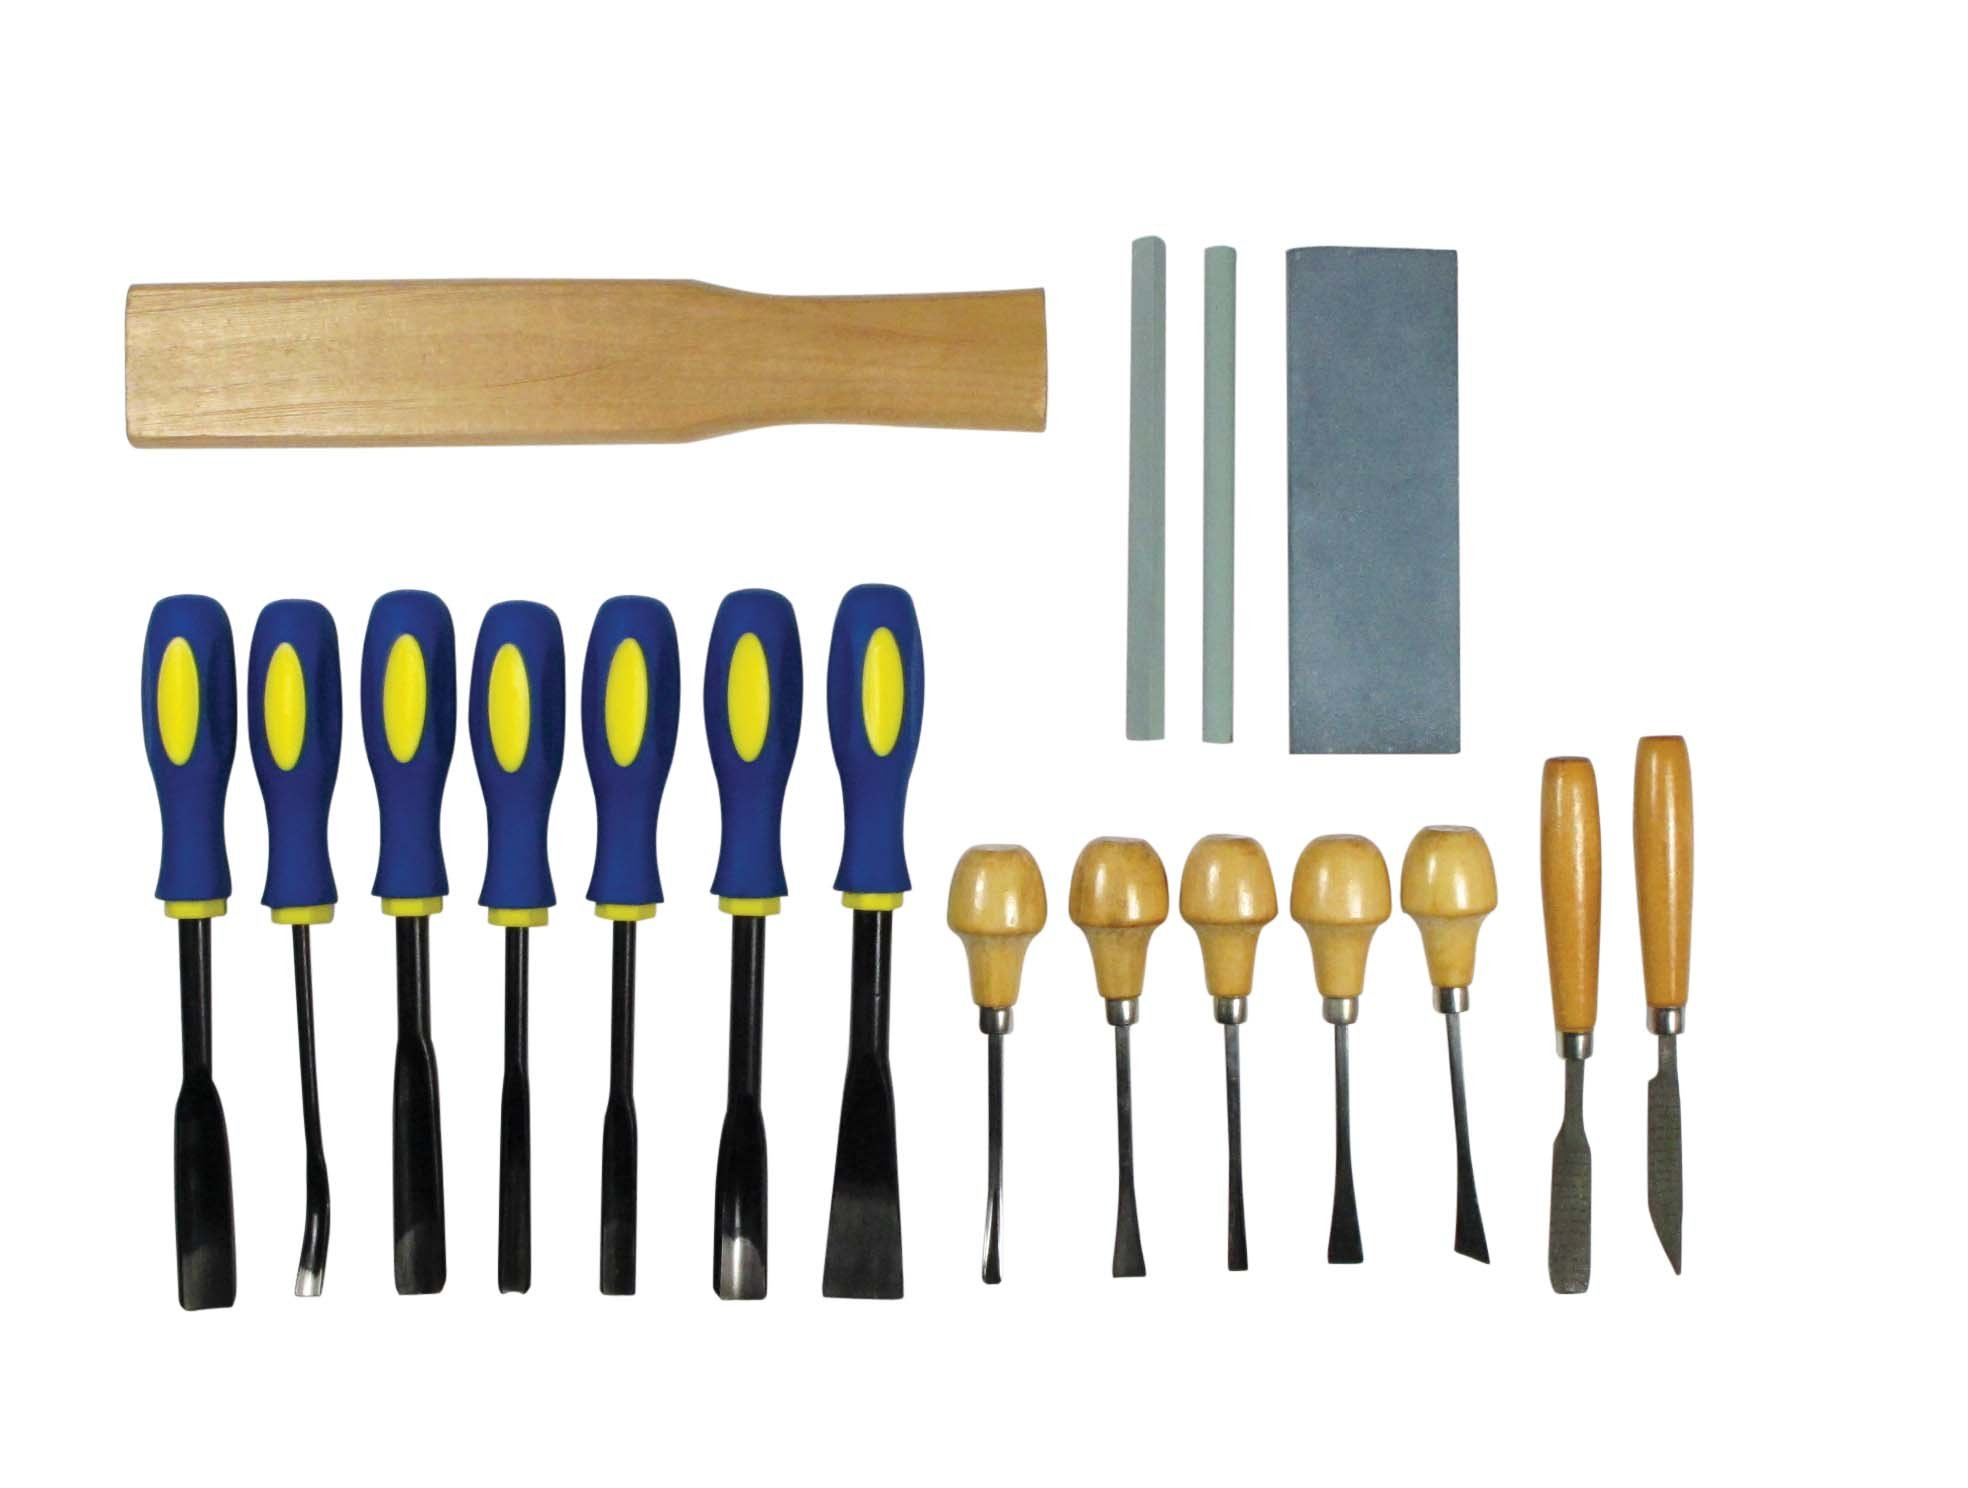 SE 7718WC 18-Piece Professional Quality Wood Carving Chisel Set